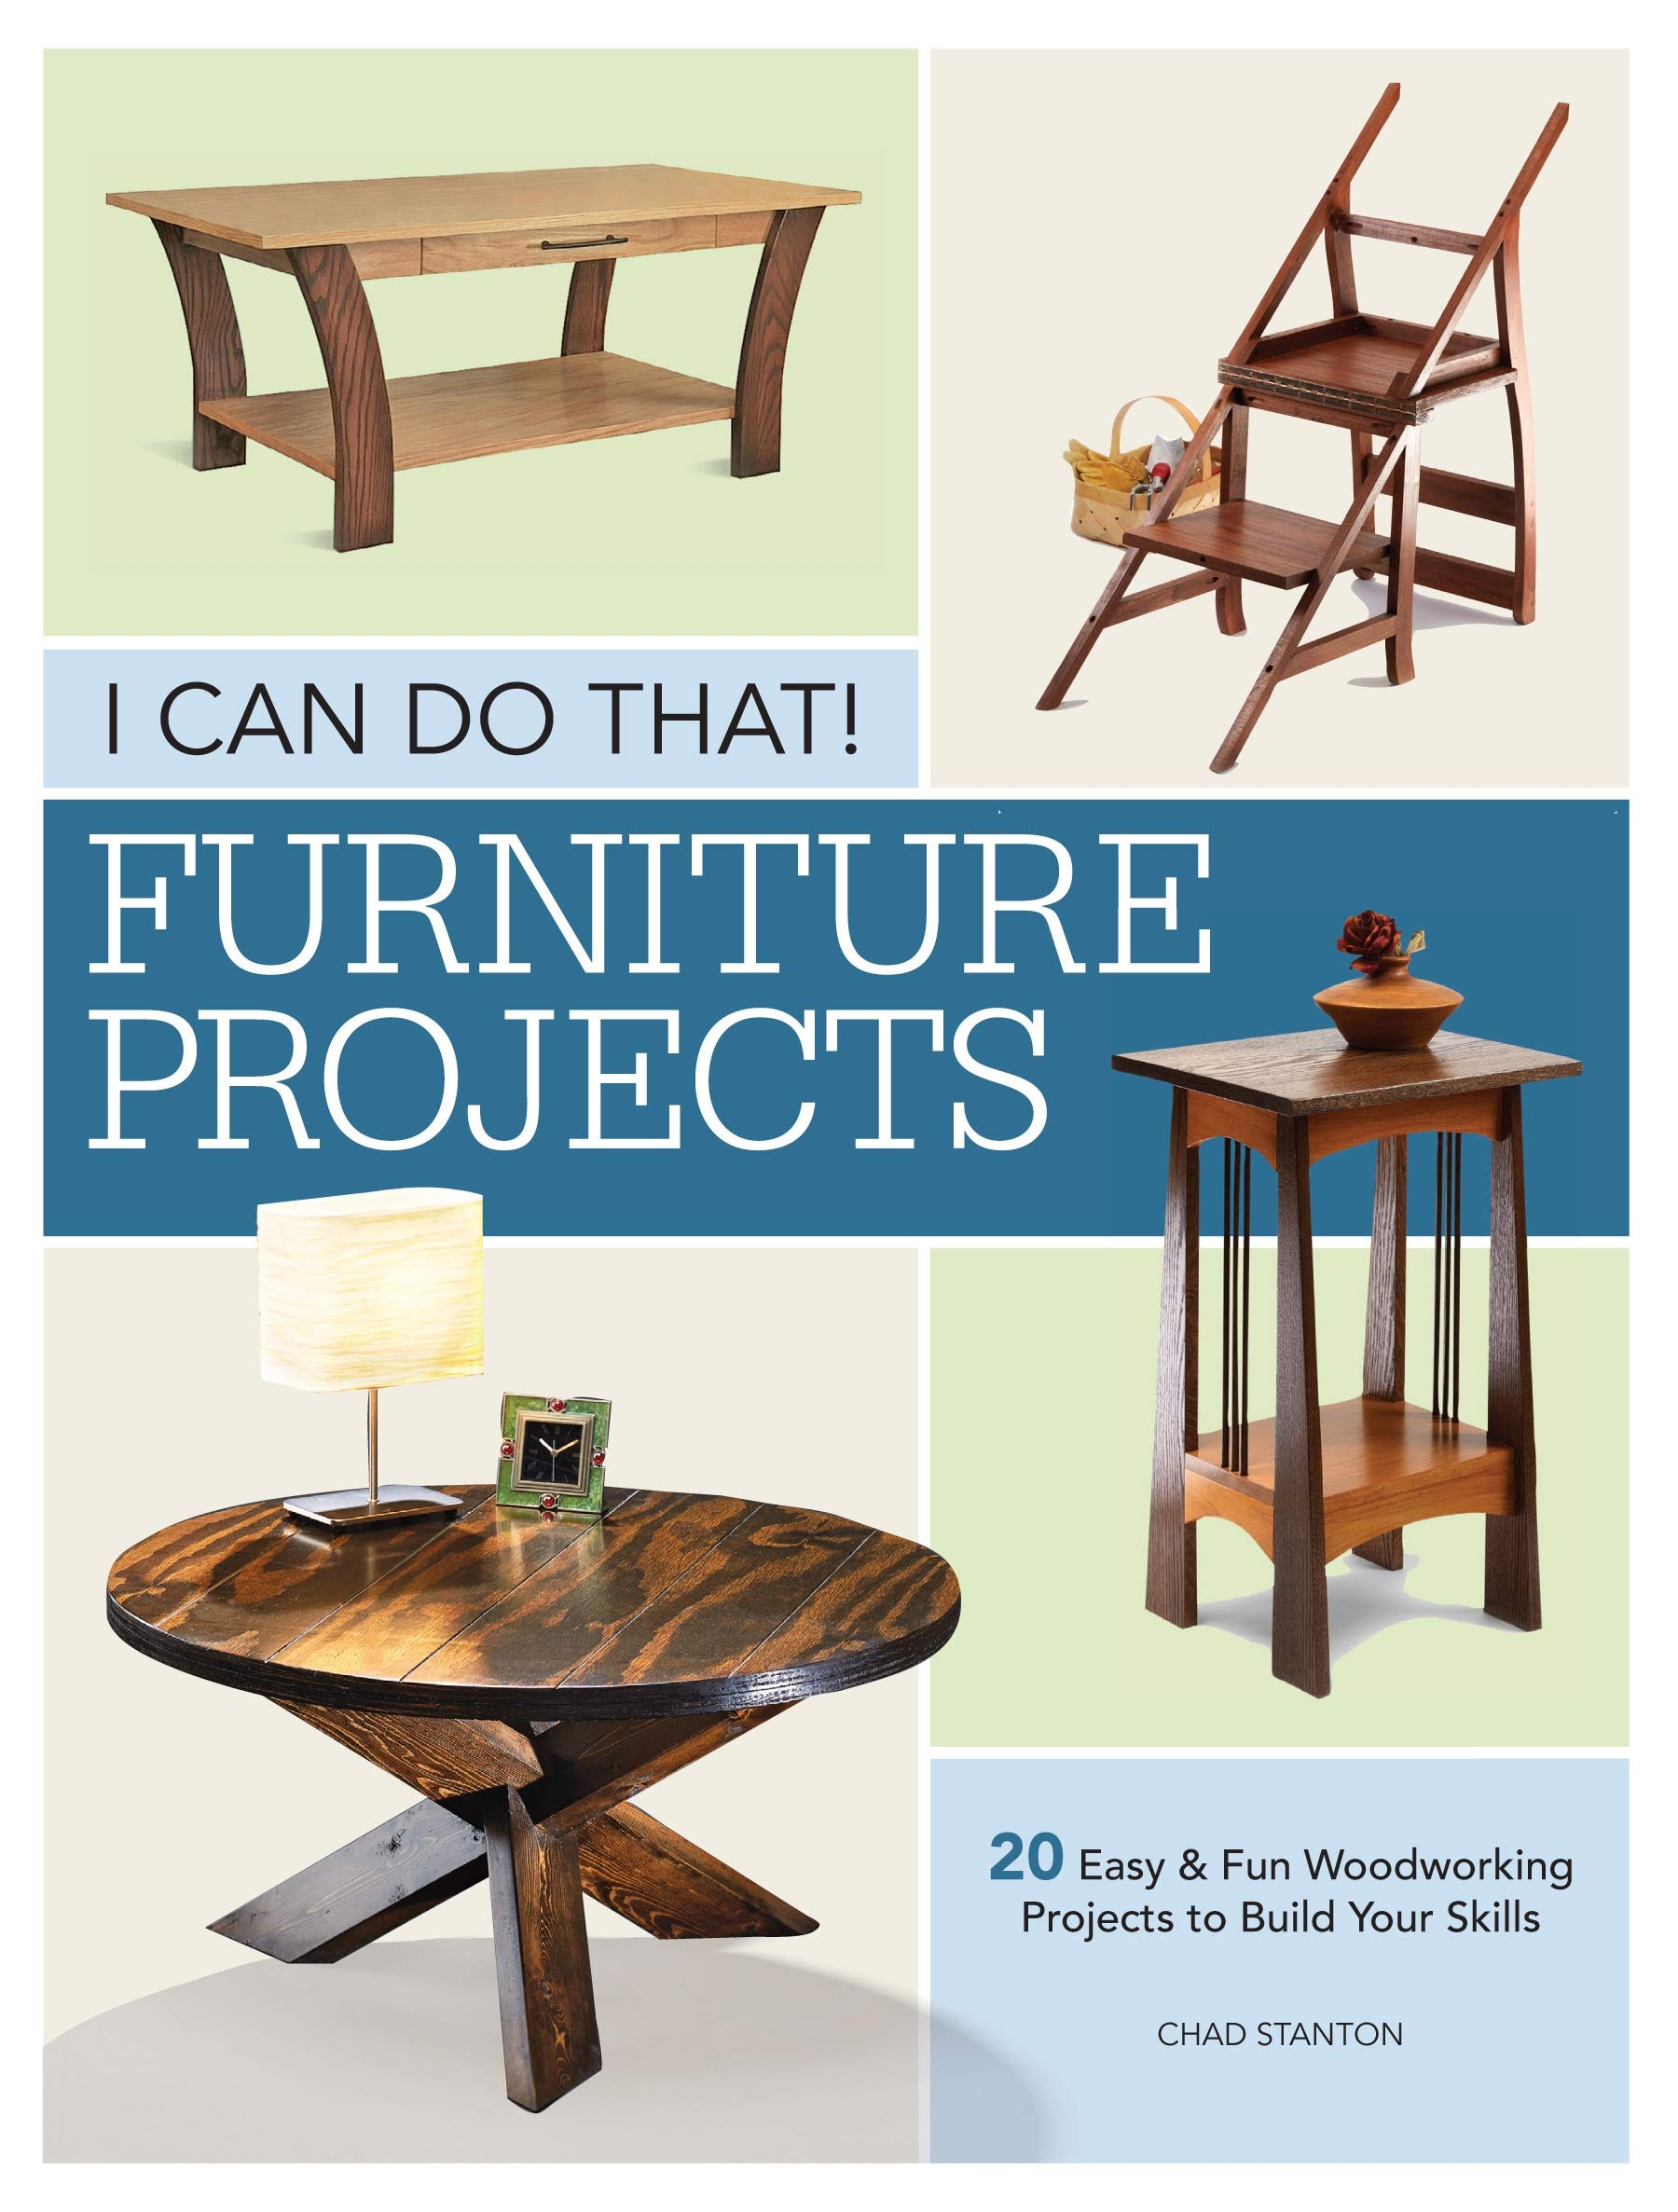 I Can Do That Furniture Projects 20 Easy Fun Woodworking Projects To Build Your Skills Stanton Chad 9781440351235 Books Amazon Ca